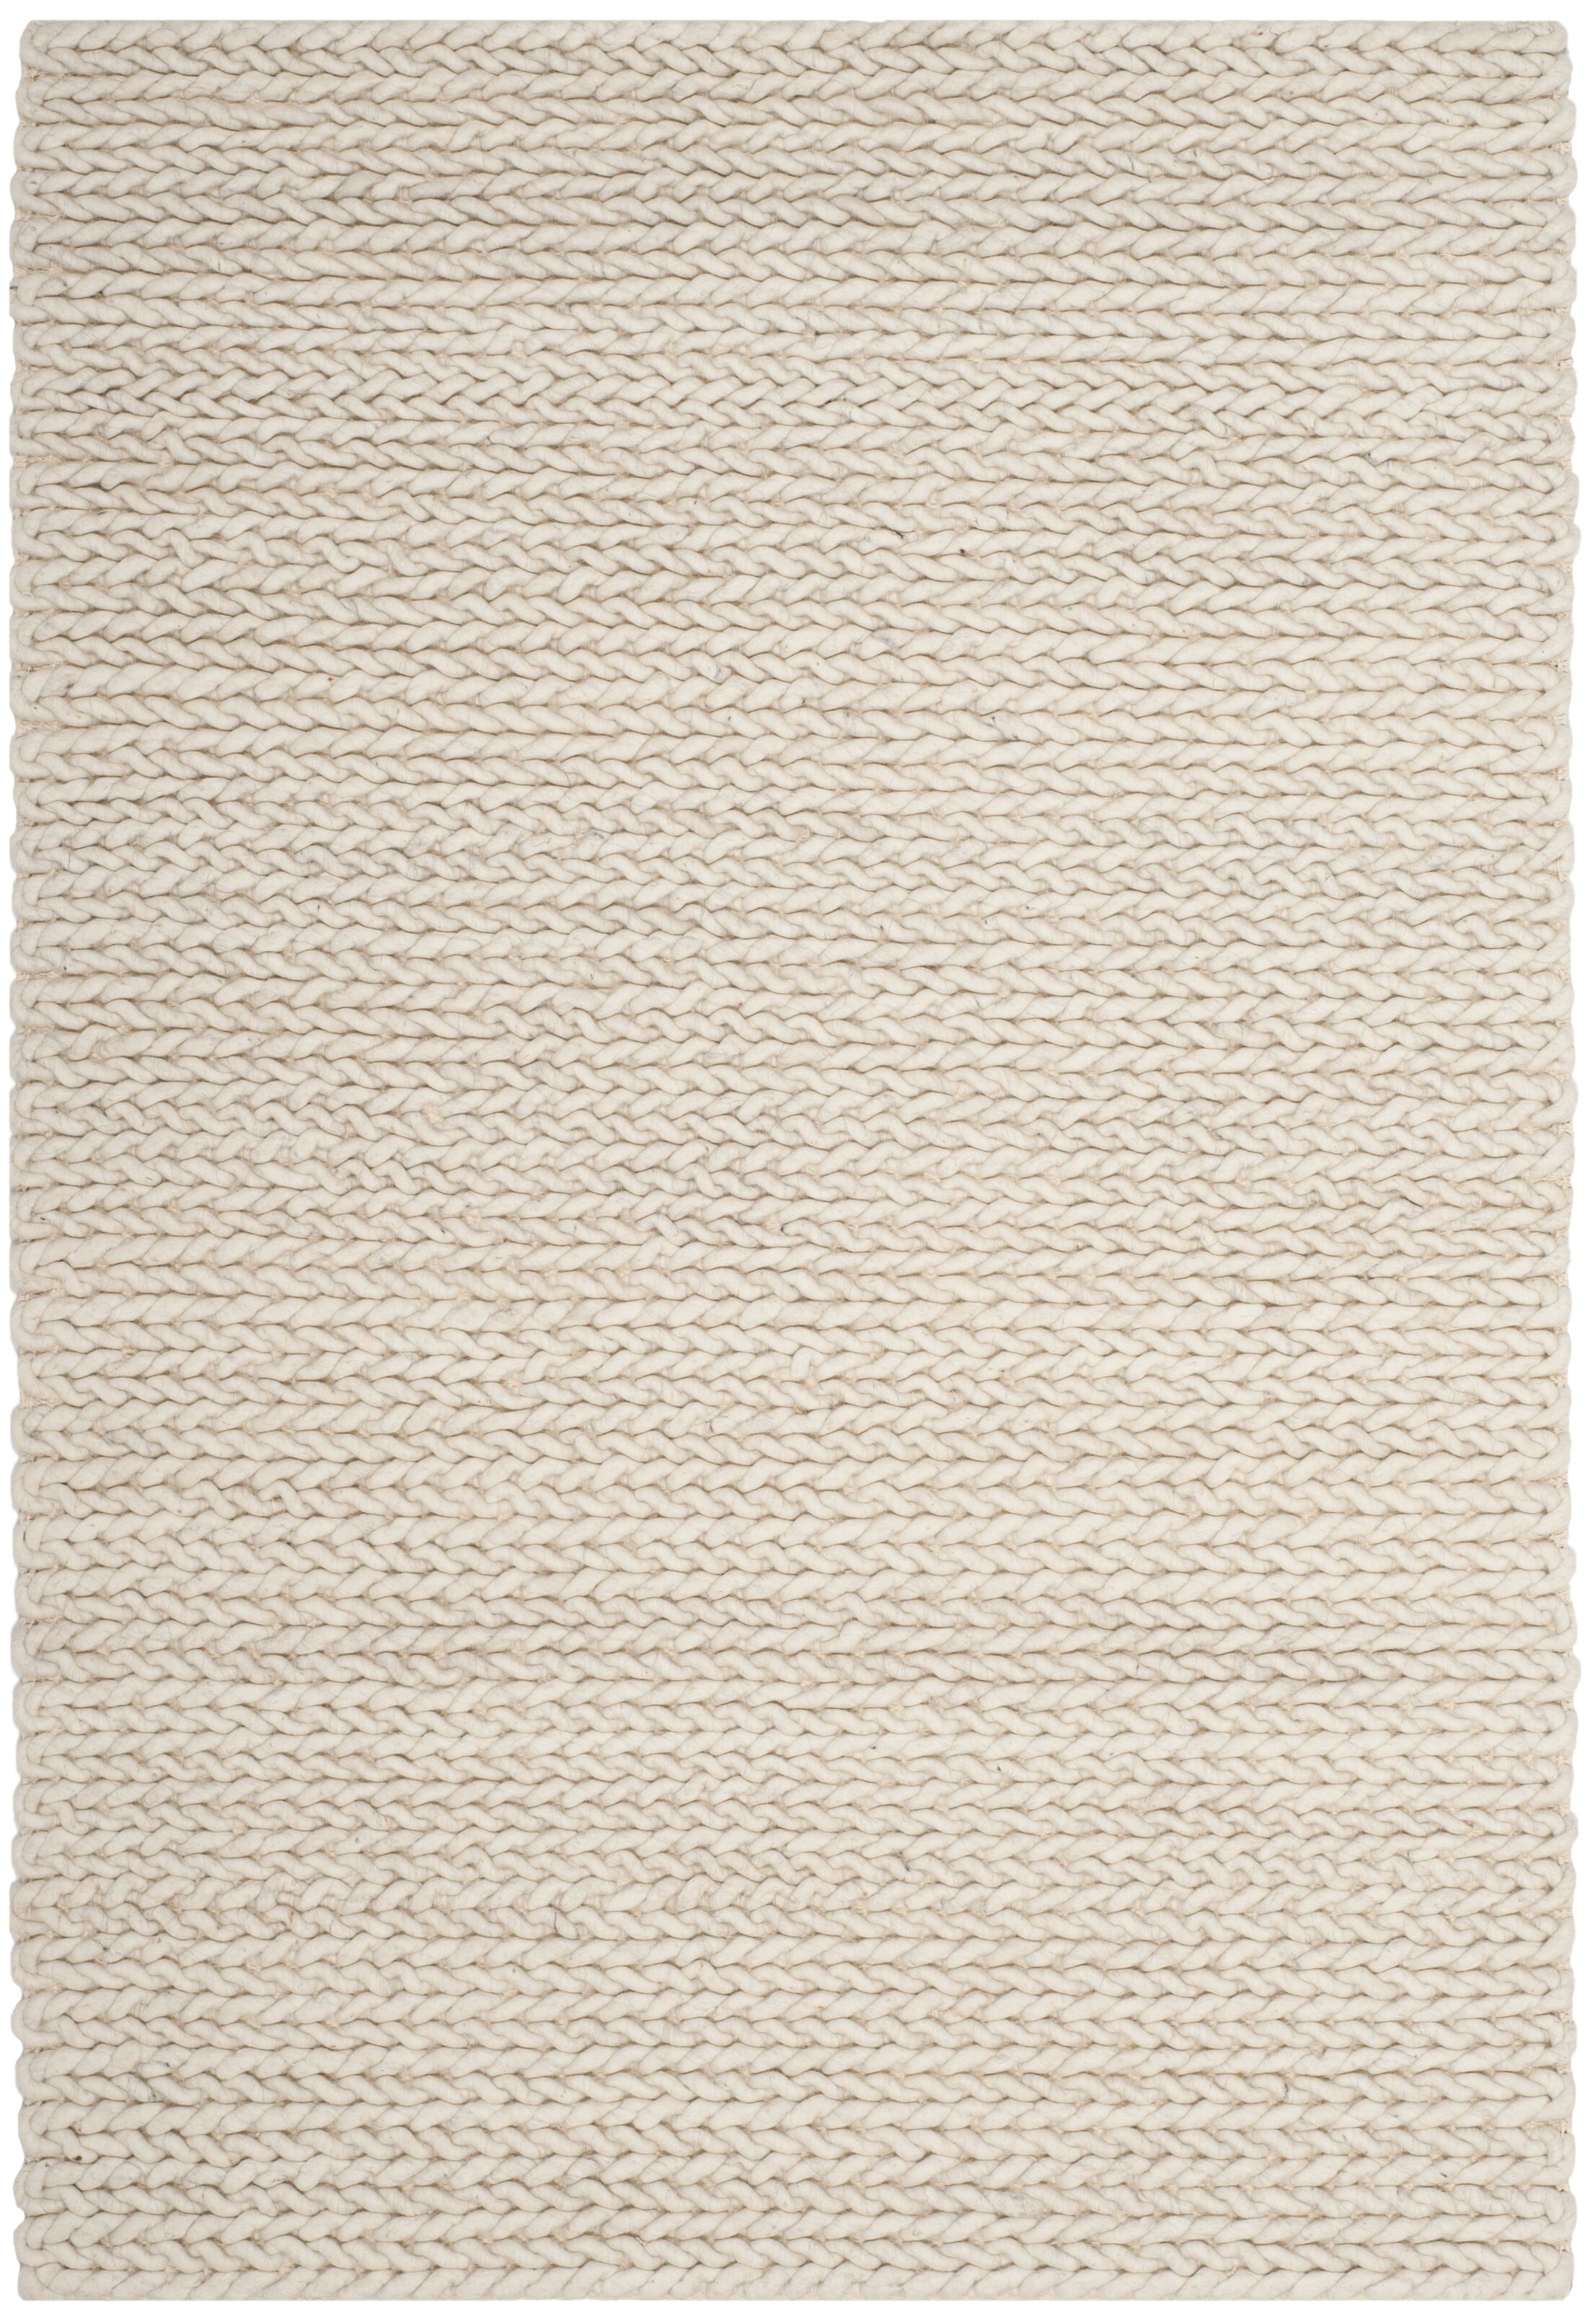 Sinope Hand-Tufted Ivory Area Rug Rug Size: Rectangle 4' x 6'